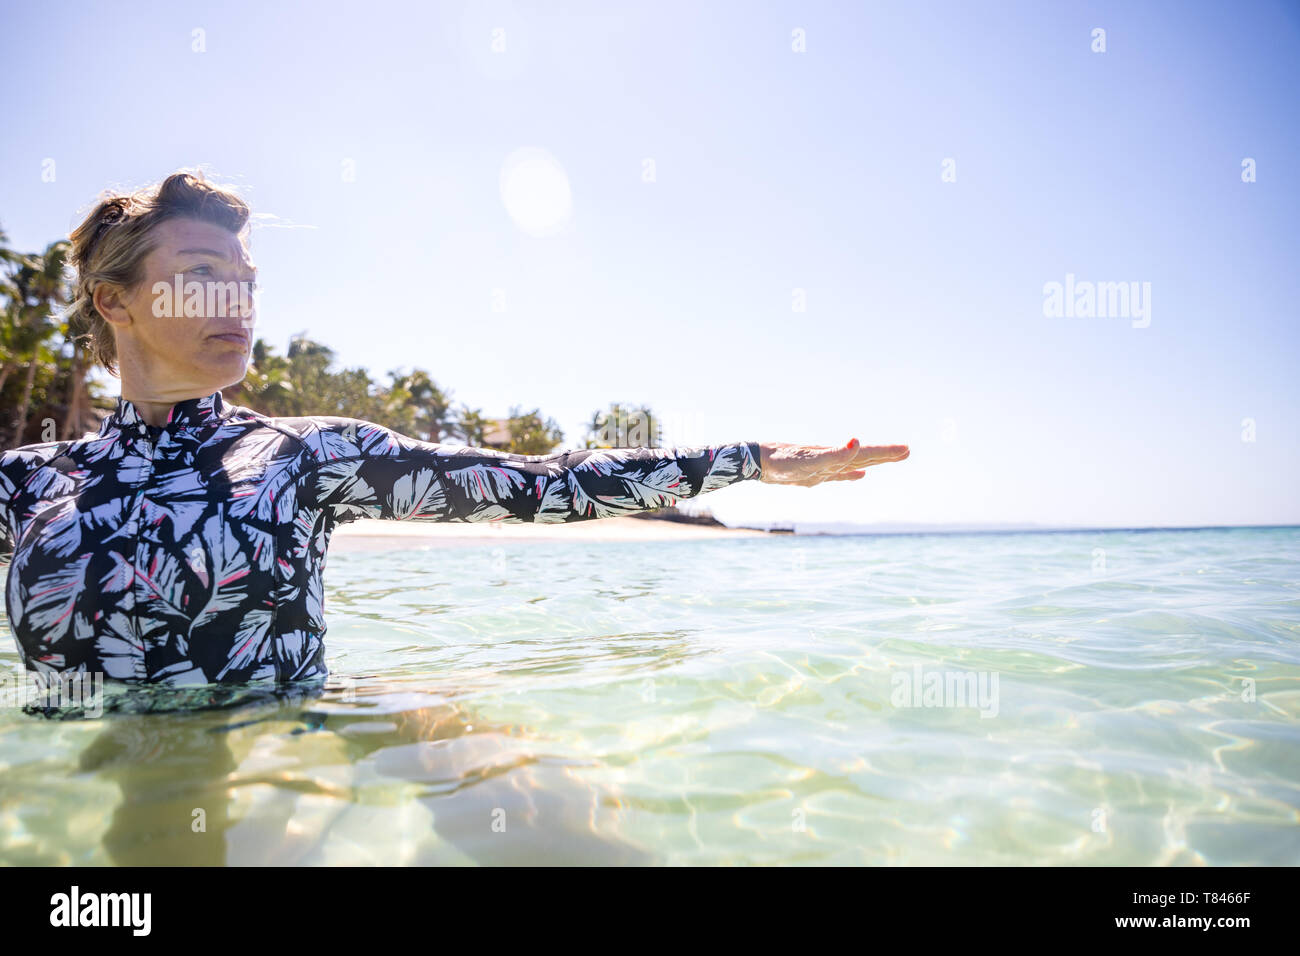 Woman stretching hand in sea, Pagudpud, Ilocos Norte, Philippines Stock Photo